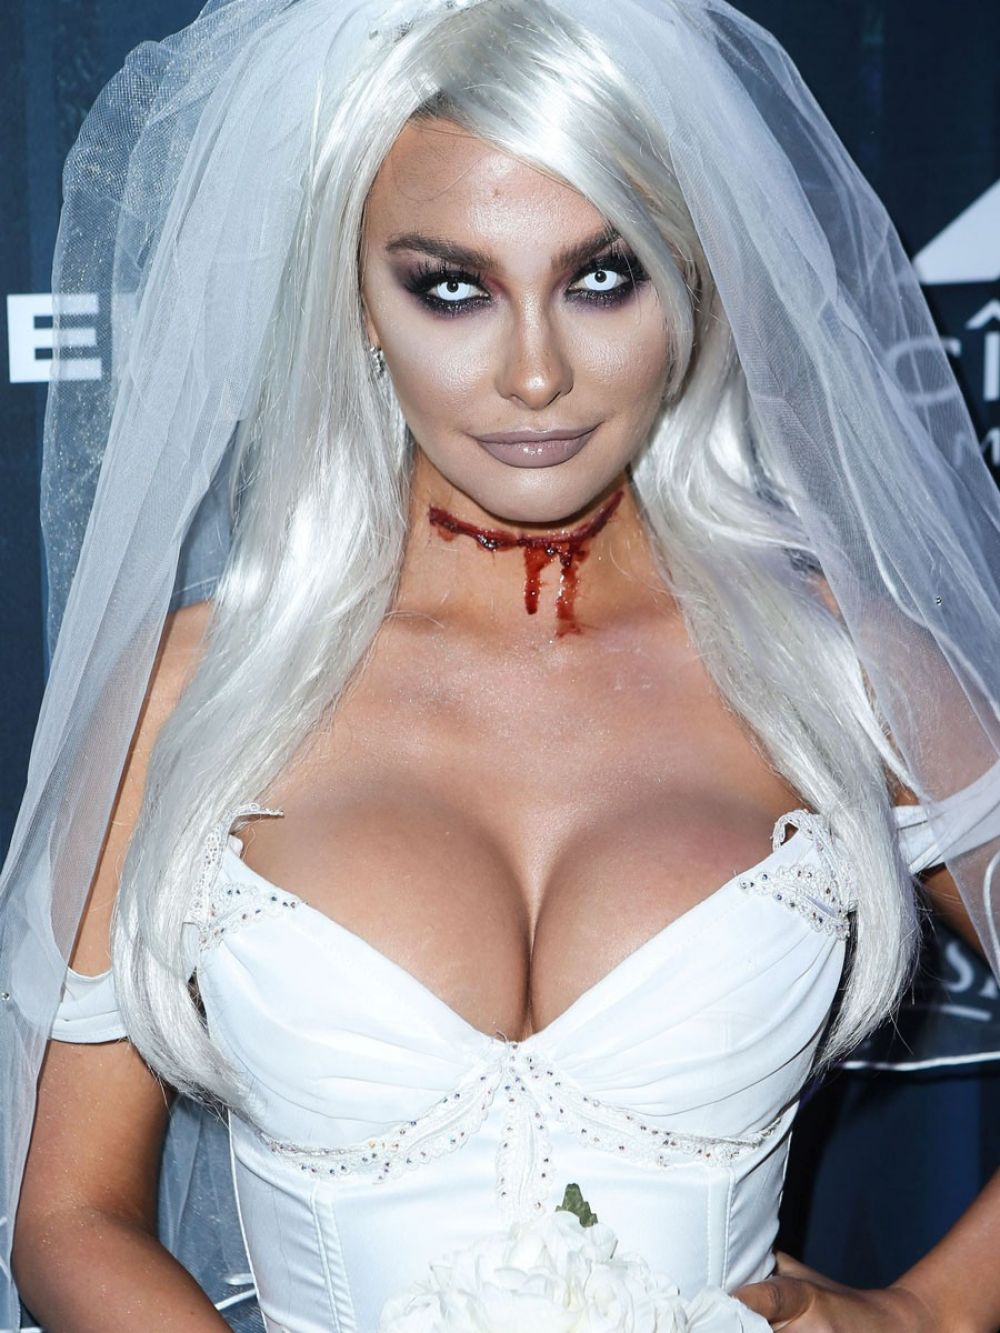 EMILY SEARS at Maxim Halloween Party in Los Angeles 10/22/2016